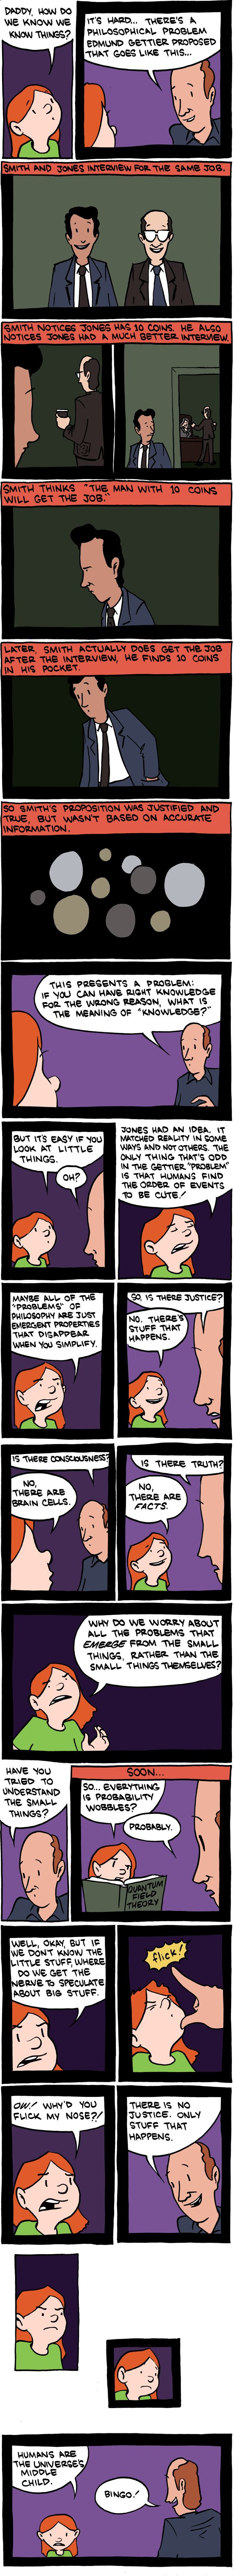 Saturday Morning Breakfast Cereal - Gettier Problem.